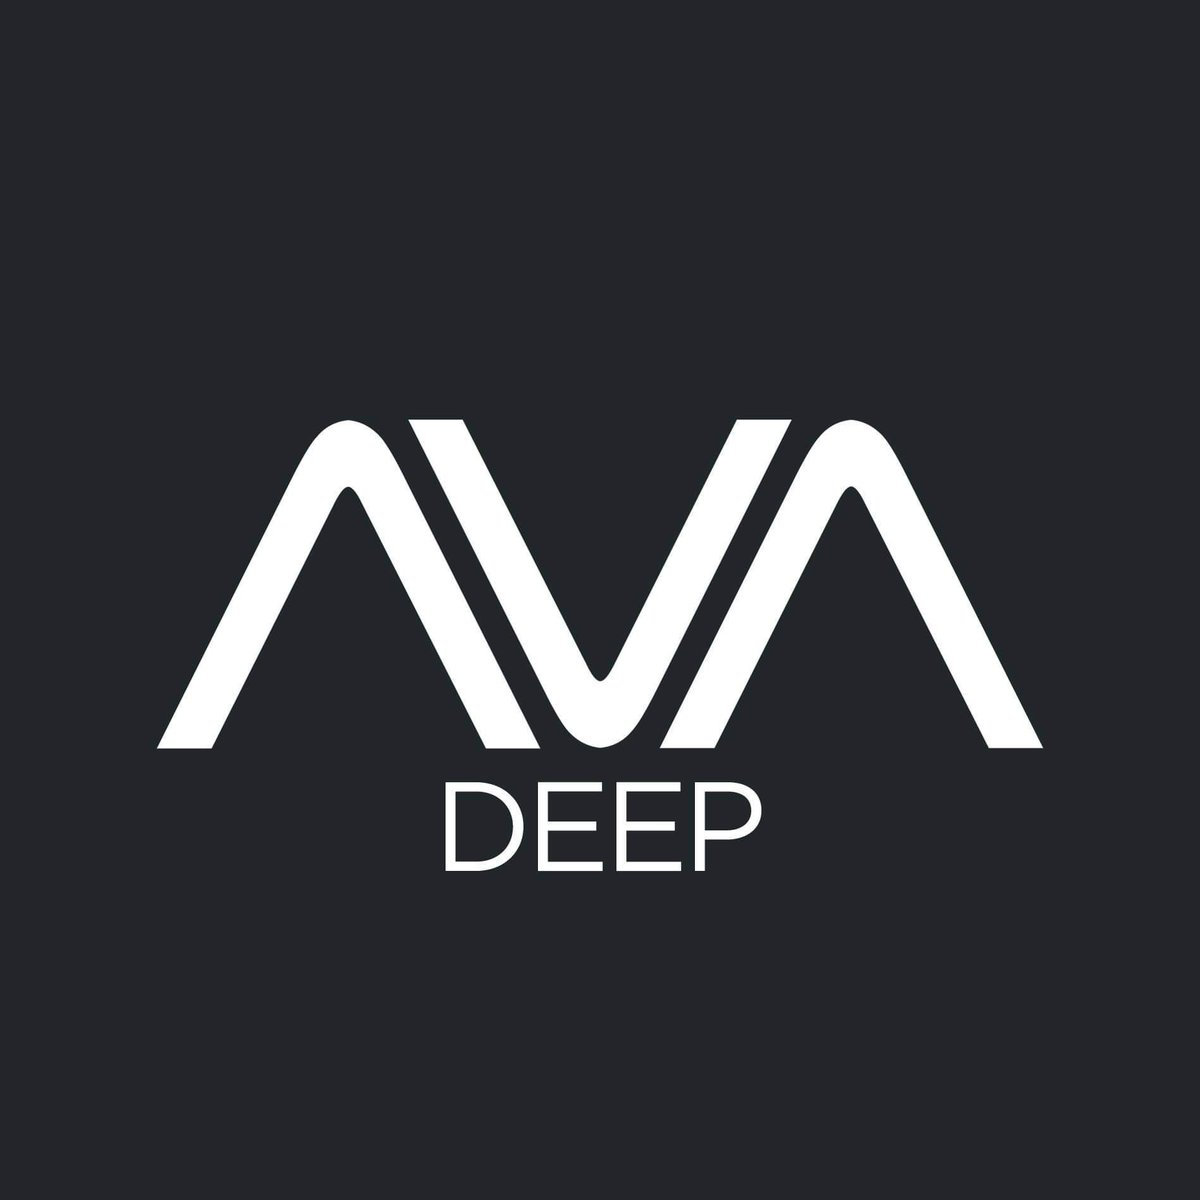 """Charting a new course in our musical family, AVA is proud to present """"AVA Deep"""". Dedicated to the deeper & progressive sounds we love, the new sub-label under the watchful eye of LTN will see forthcoming music from Ghostbeat, Andre Sobota, Damian Wasse, Taglo & more. 💙 #AVAdeep https://t.co/EgmxYWnNf6"""